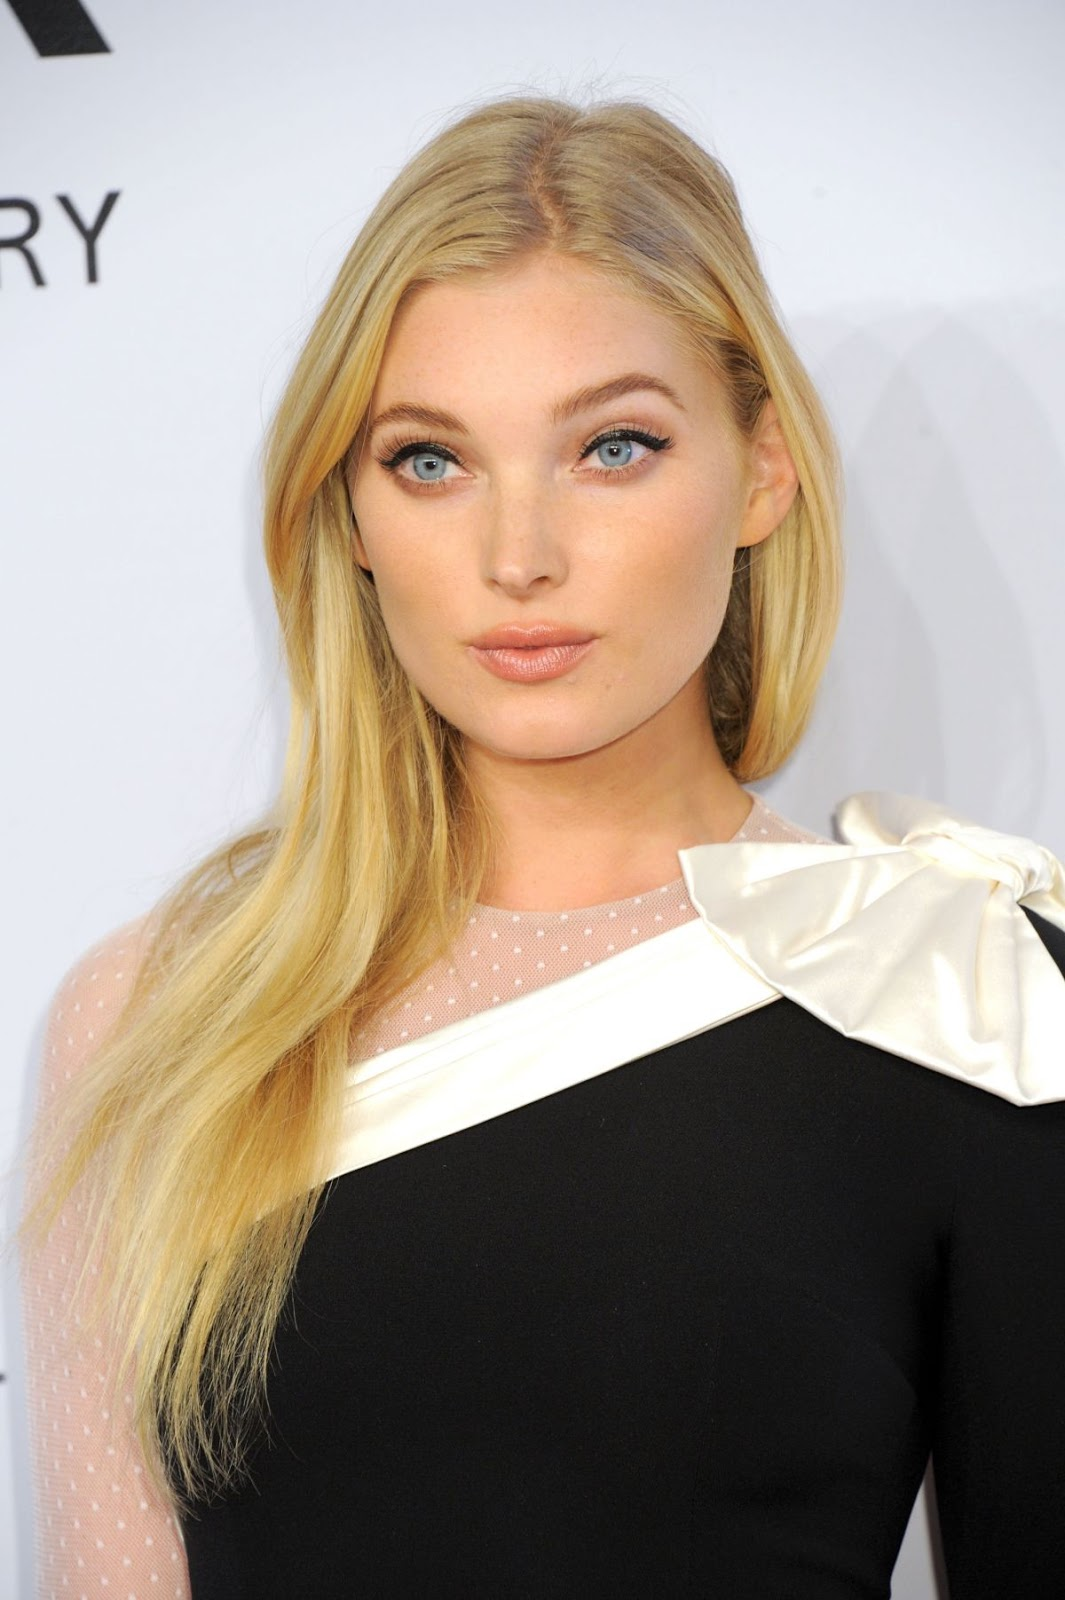 Victoria's Secret Supermodel Elsa Hosk at 2016 amfAR New York Gala